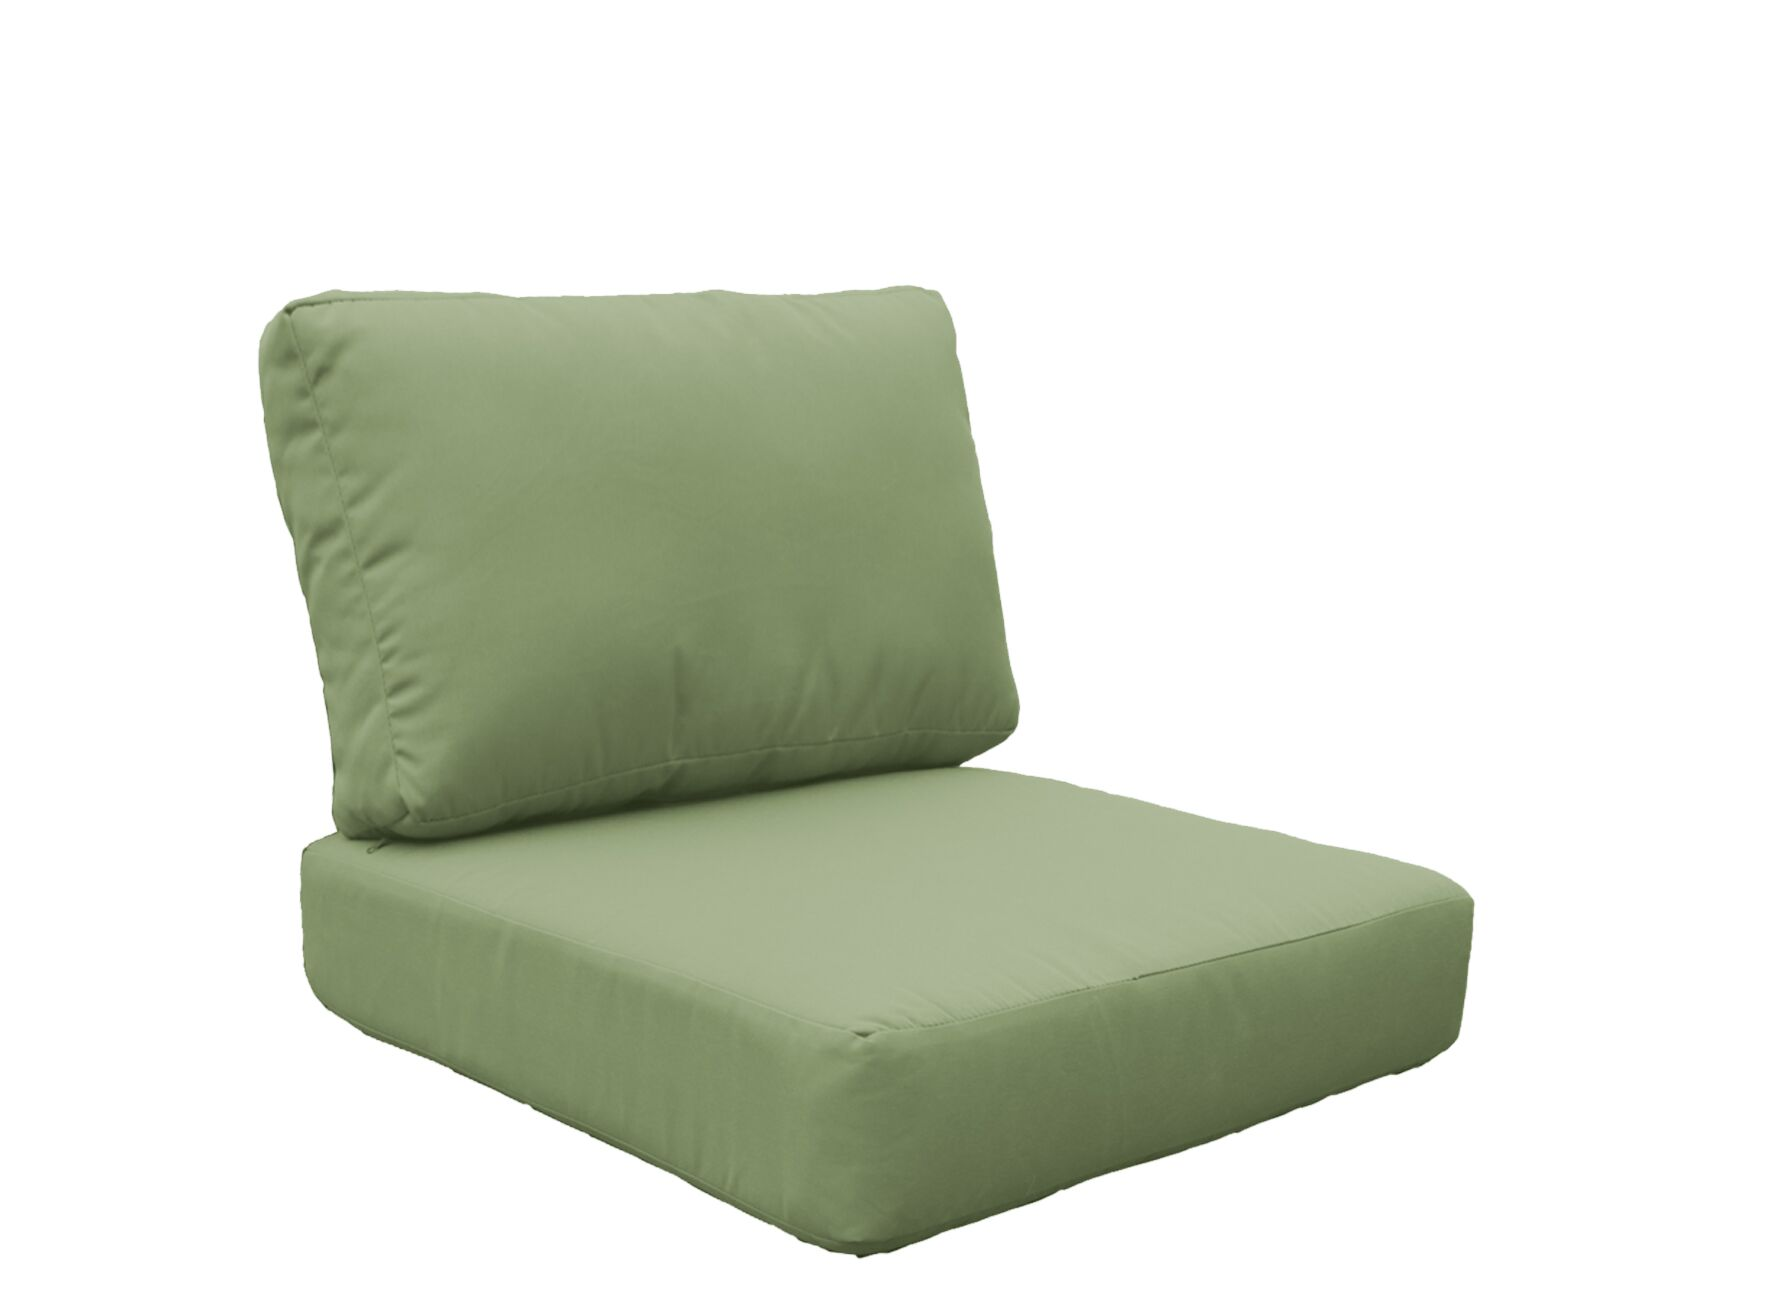 Fairmont 8 Piece Outdoor�Lounge Chair Cushion Set Fabric: Cilantro